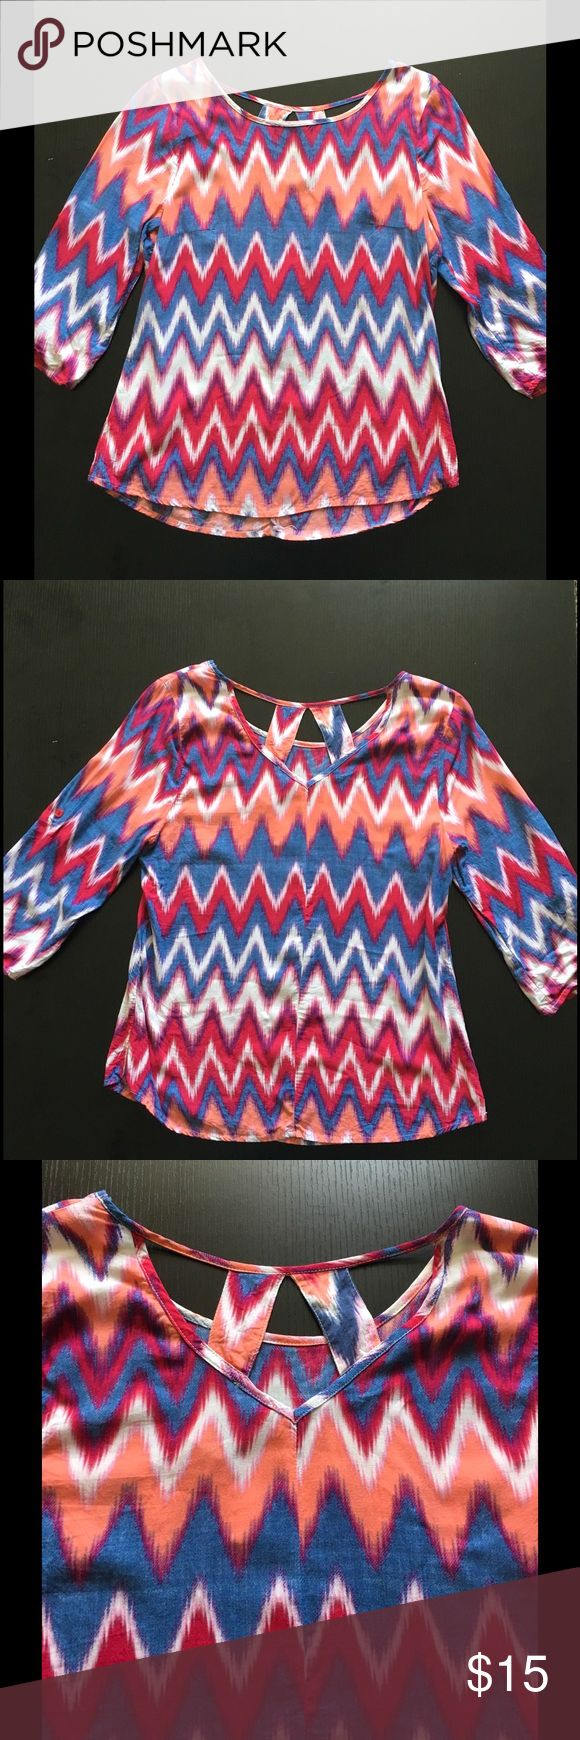 Colorful chevron top 3/4 sleeves with back cut out details. Sleeves can be rolled & buttoned or left down. Copper Key Tops Blouses